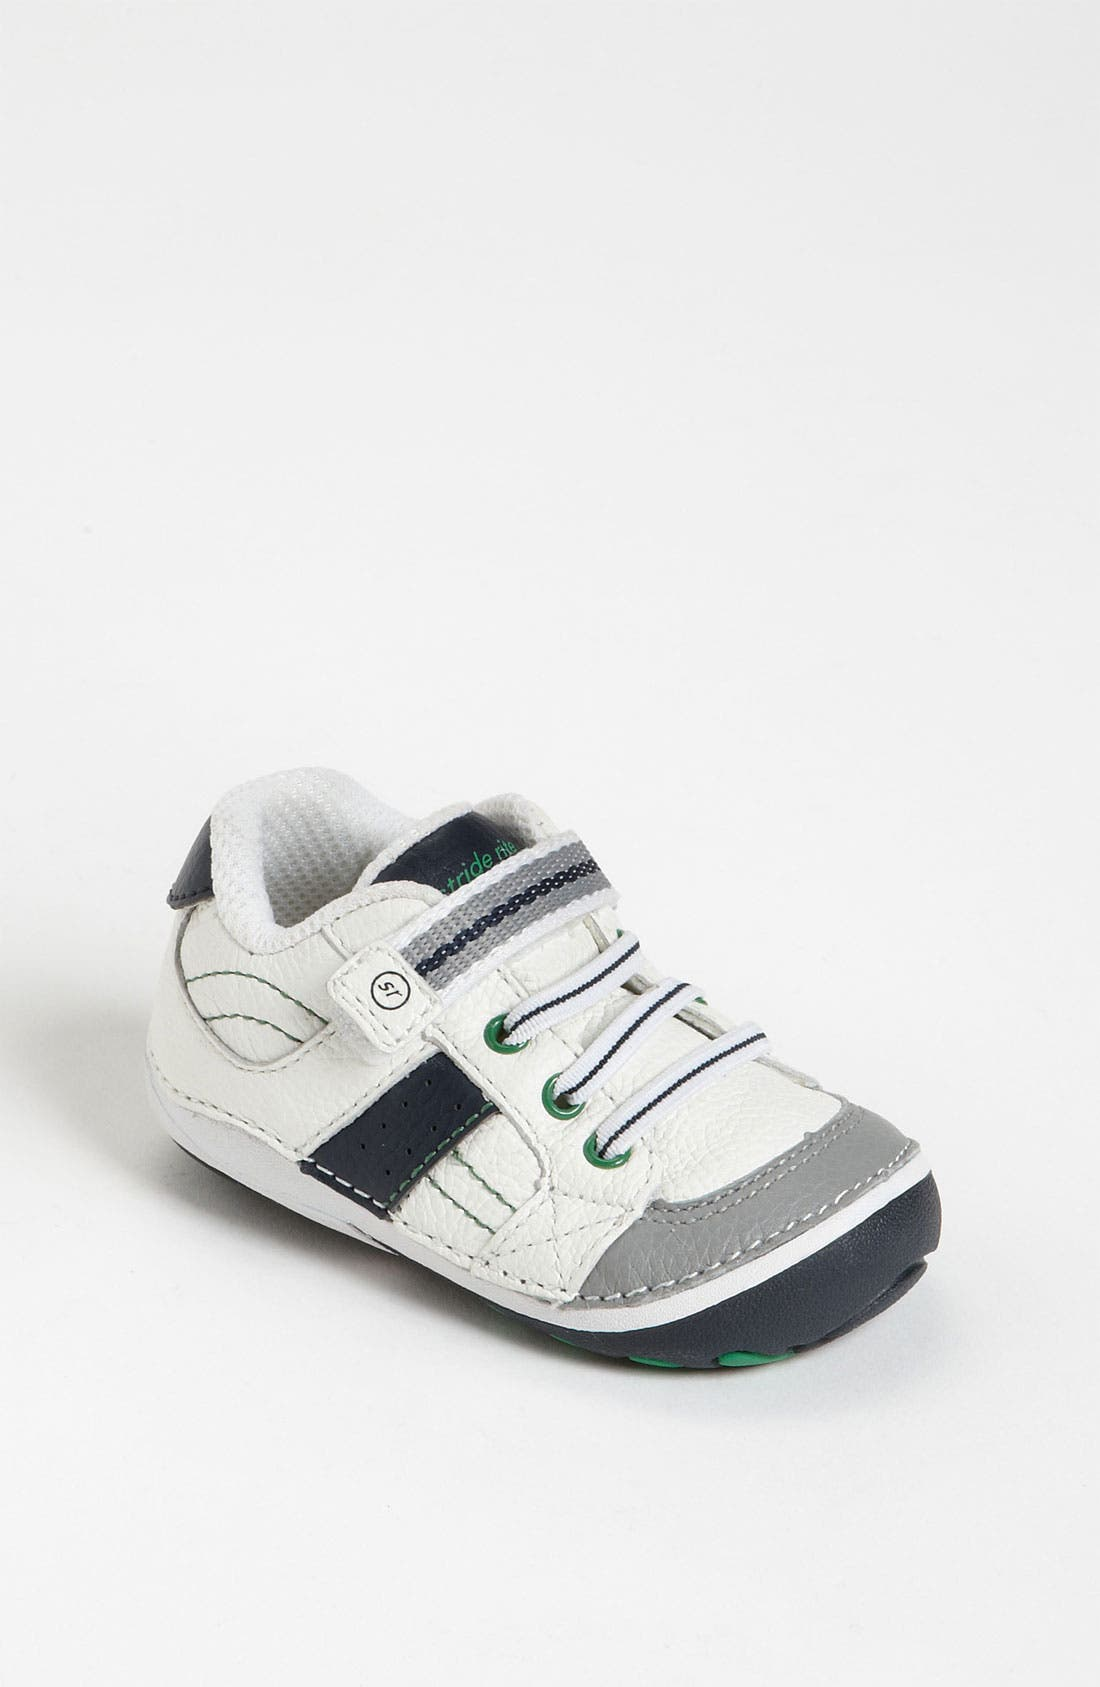 Alternate Image 1 Selected - Stride Rite 'Arte' Sneaker (Baby & Walker)